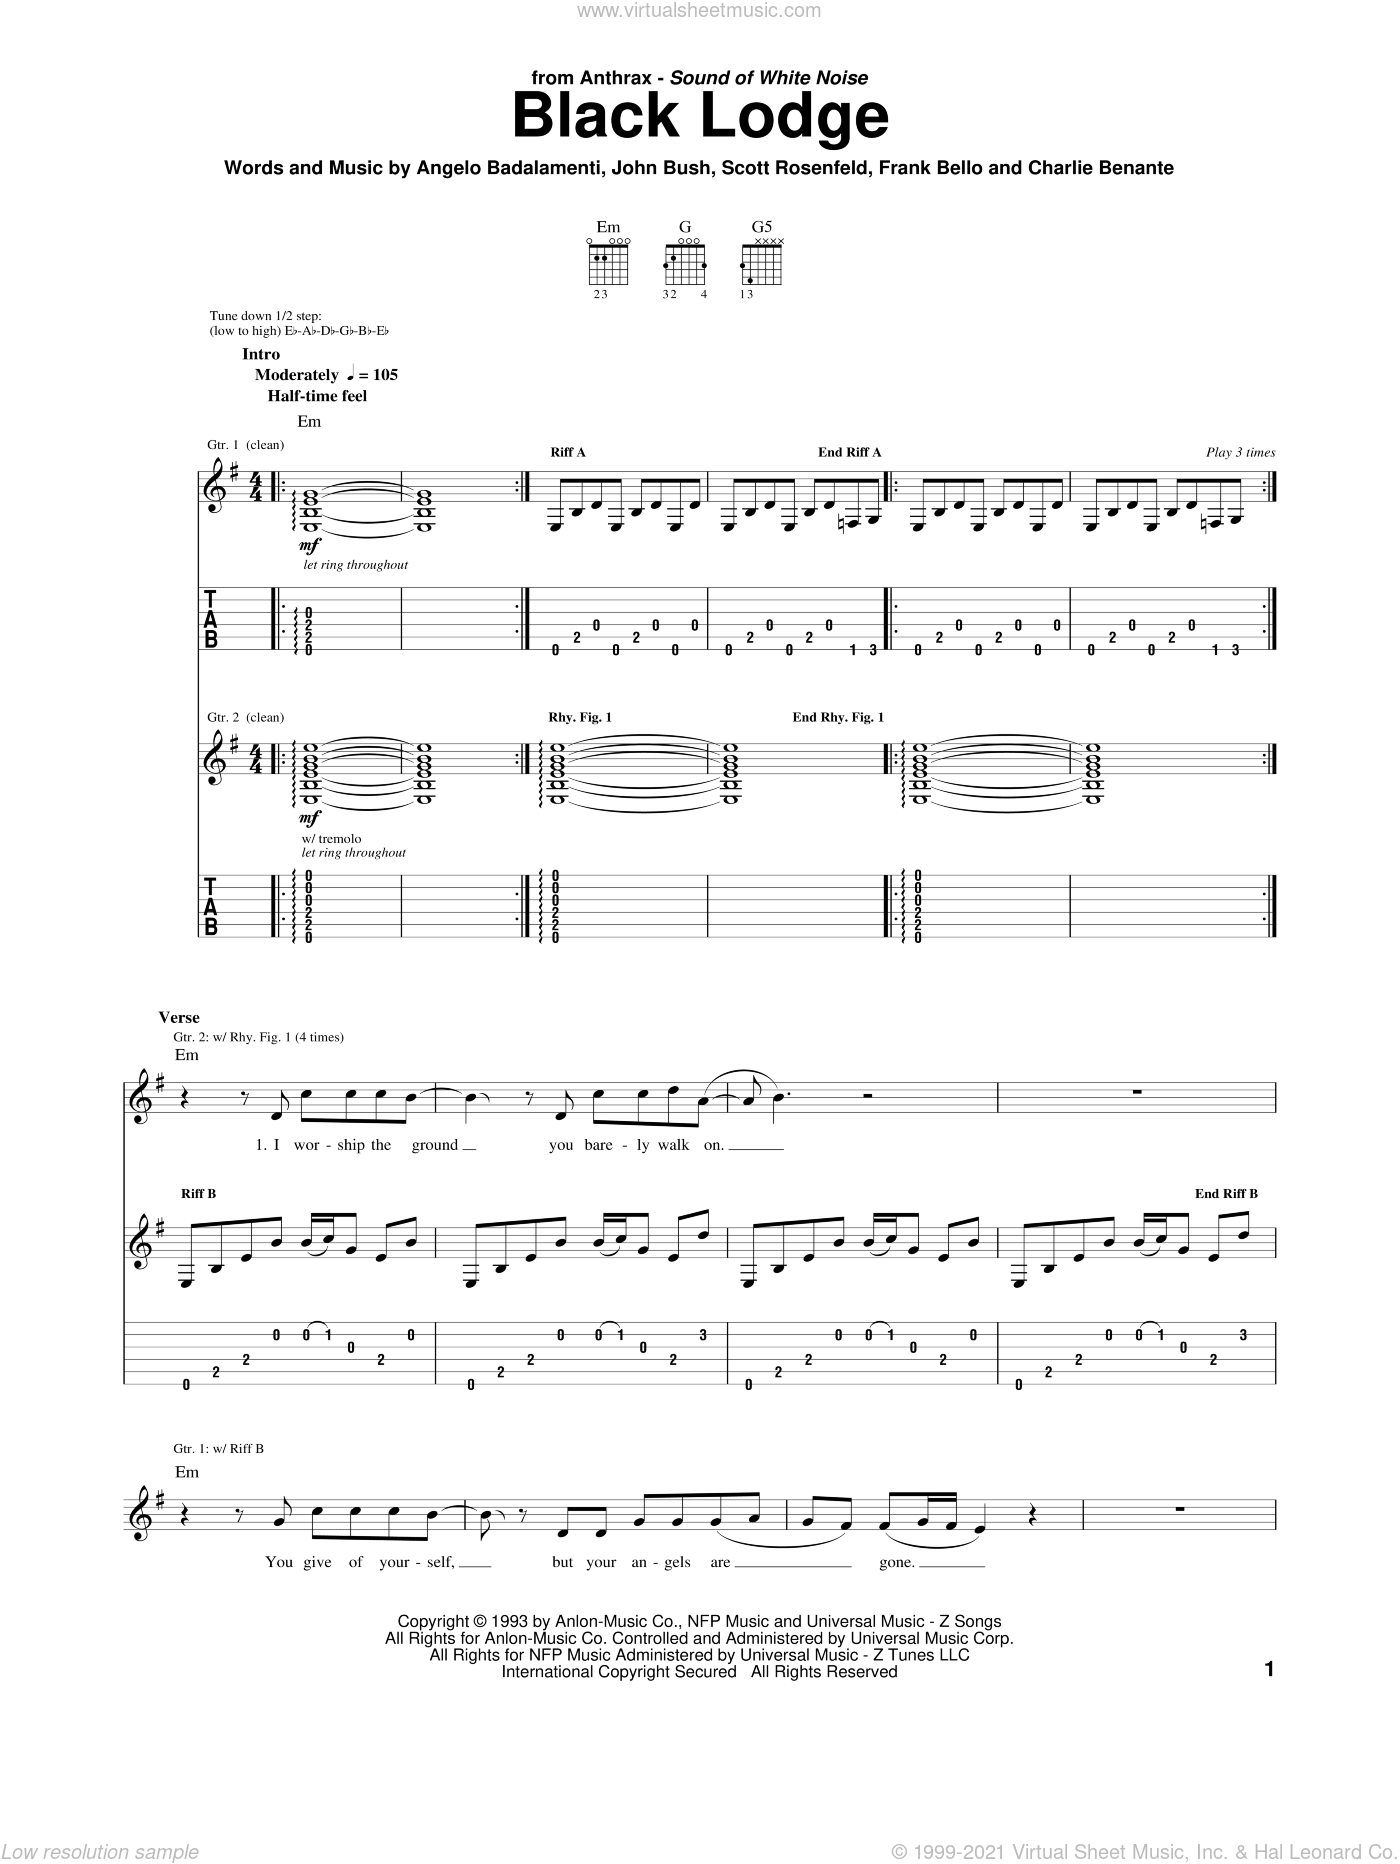 Black Lodge sheet music for guitar (tablature) by Anthrax, Angelo Badalamenti, Charlie Benante, Frank Bello, John Bush and Scott Rosenfeld, intermediate skill level